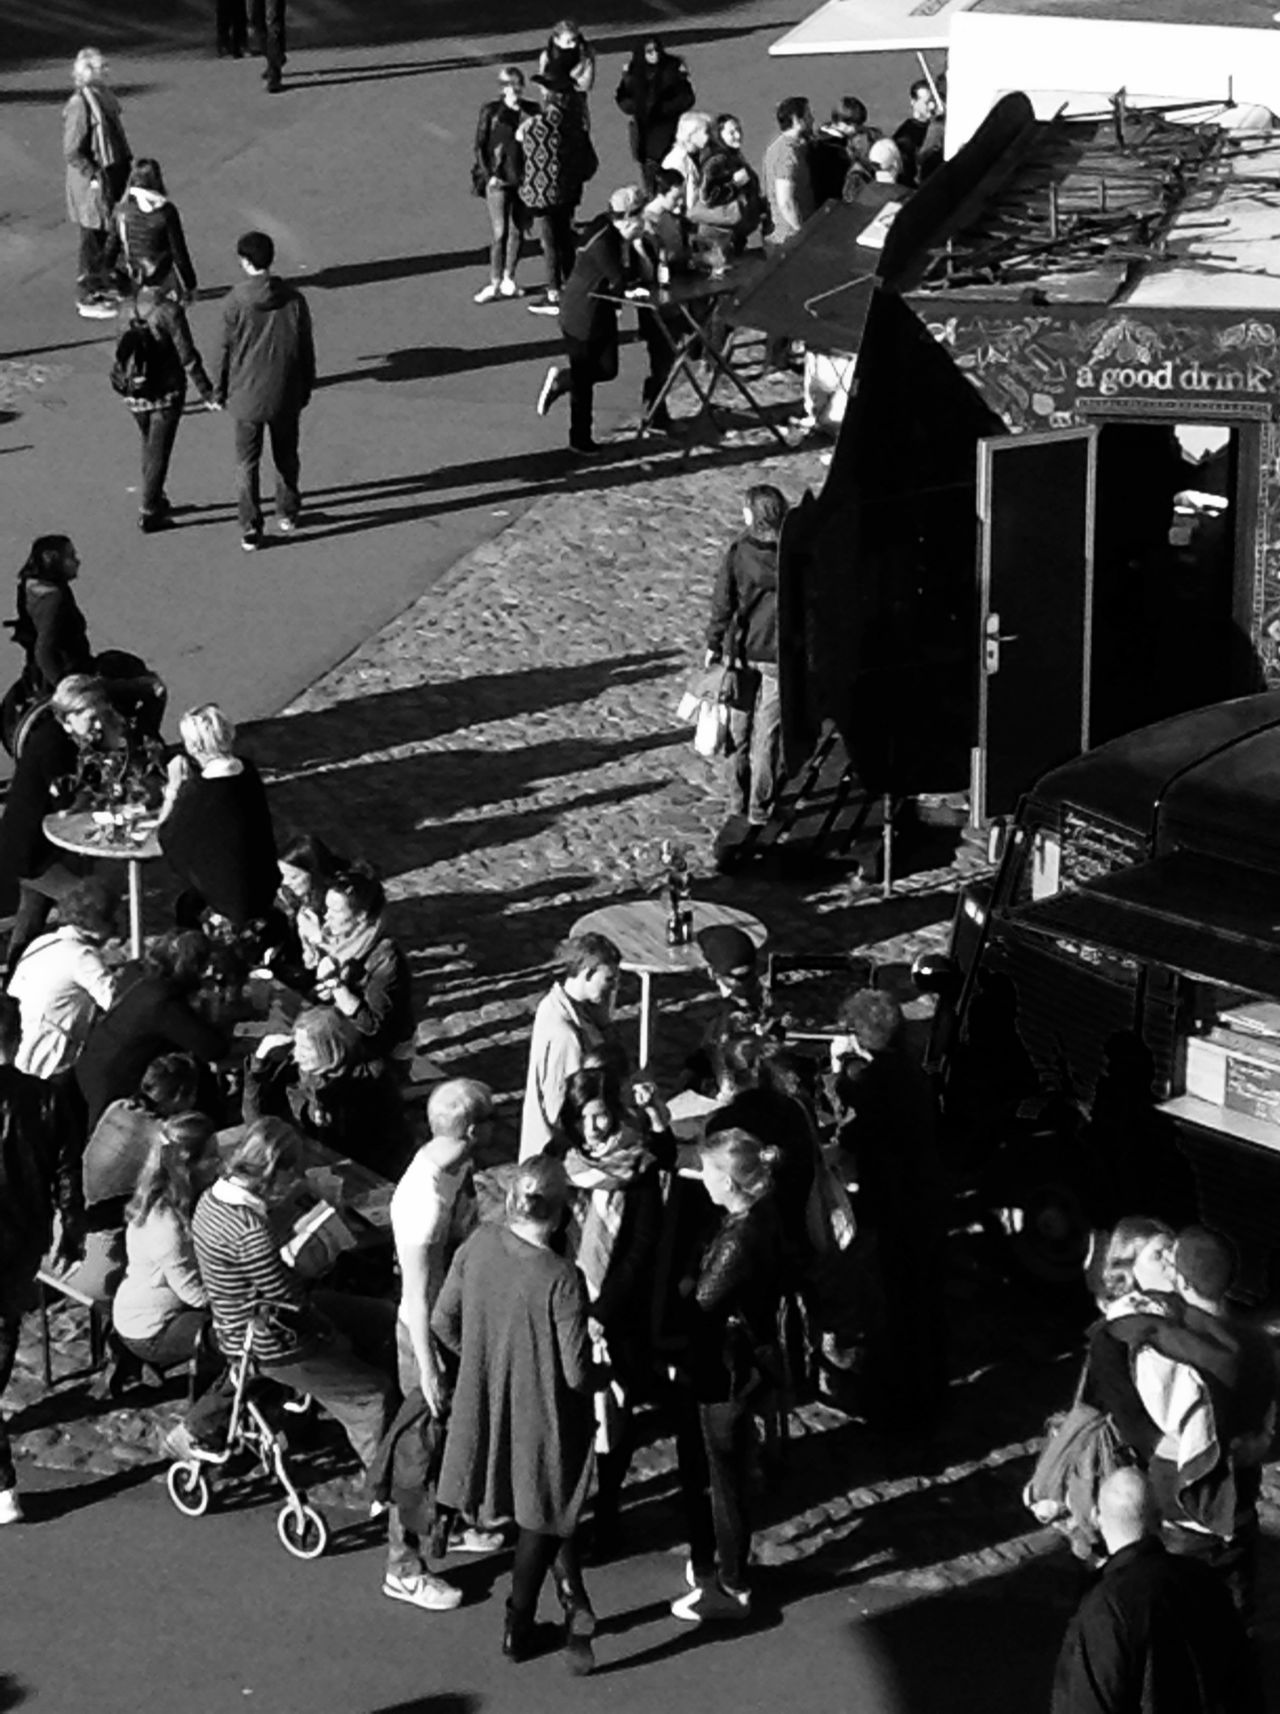 Taking Photos Urban Photography Urbanpeople Aroundthefoodtruck Black And White Photography Enjoying Life Check This Out B&w Street Photography